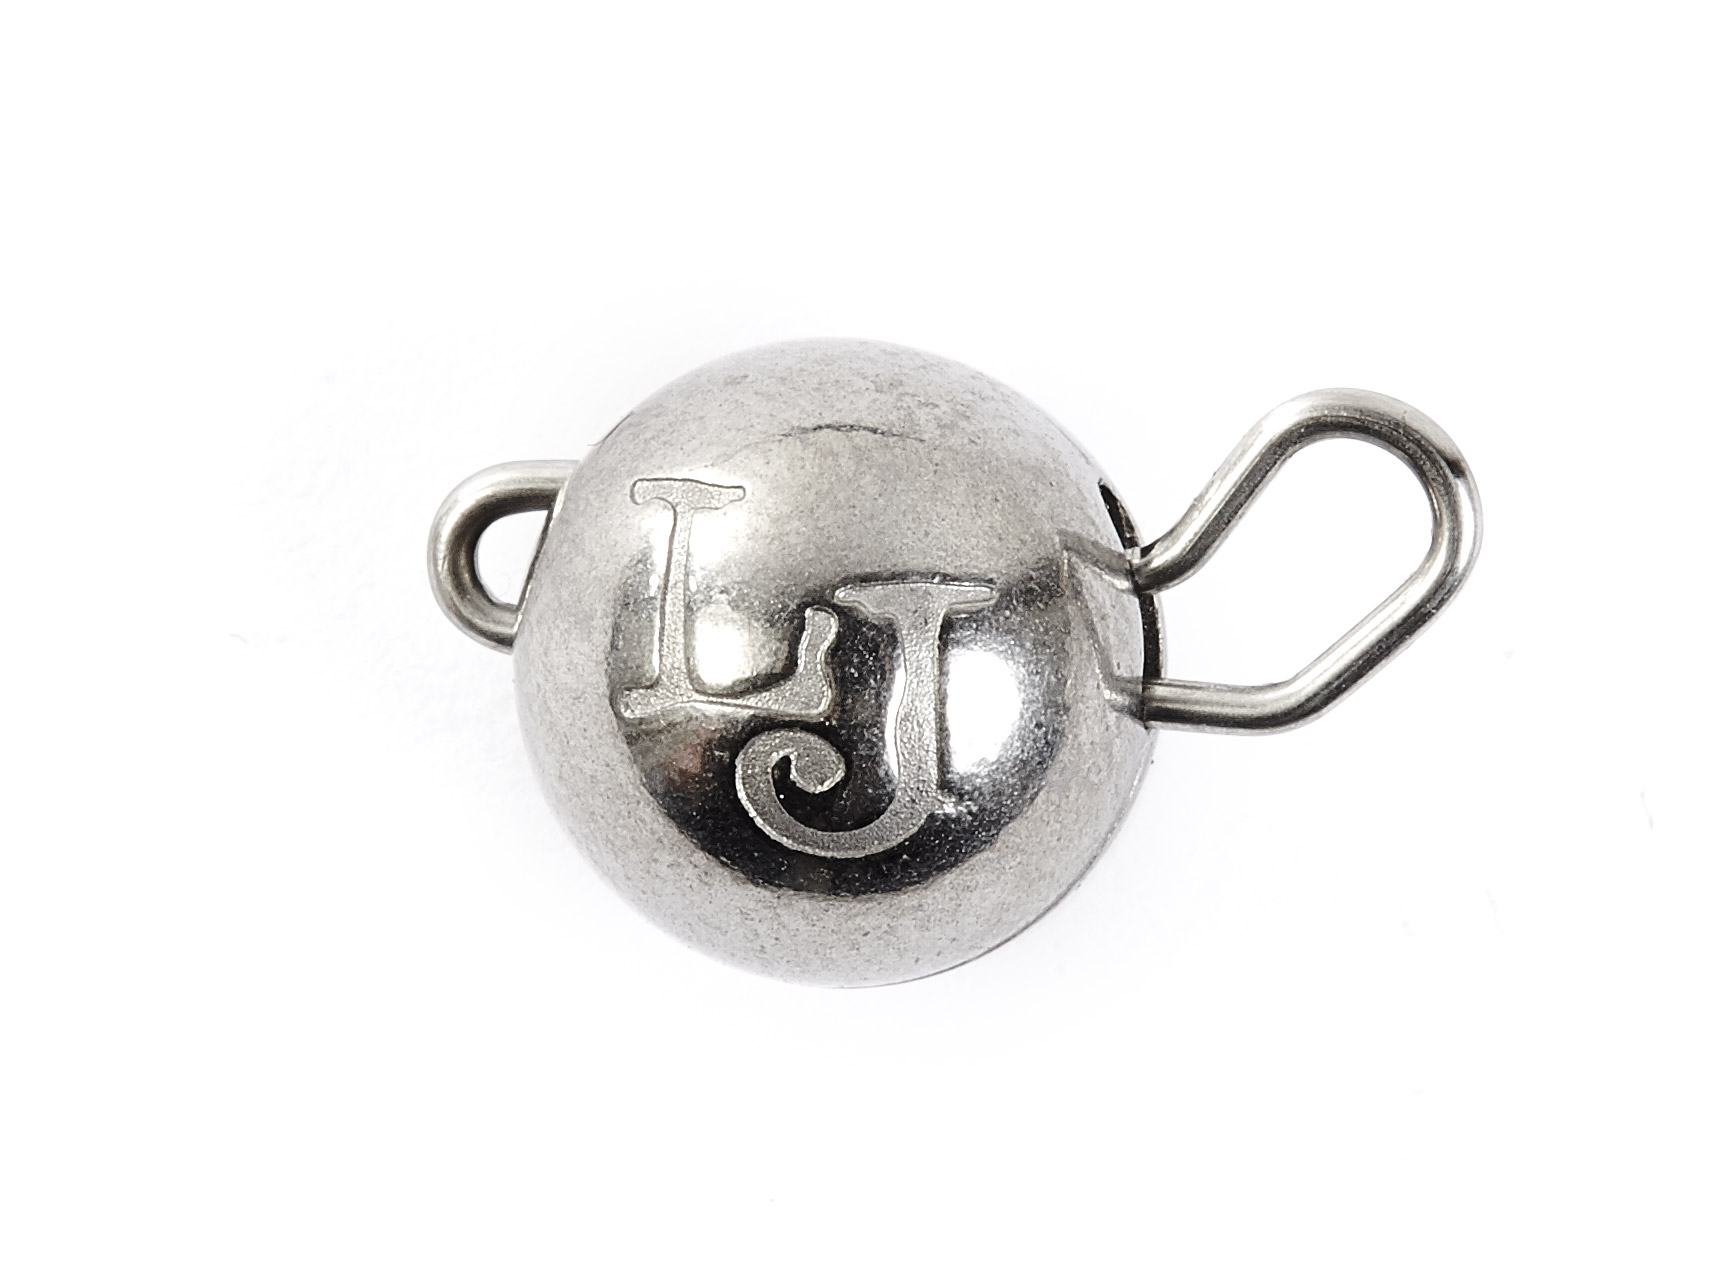 LUCKY JOHN TUNGSTEN JIG BALL 1g